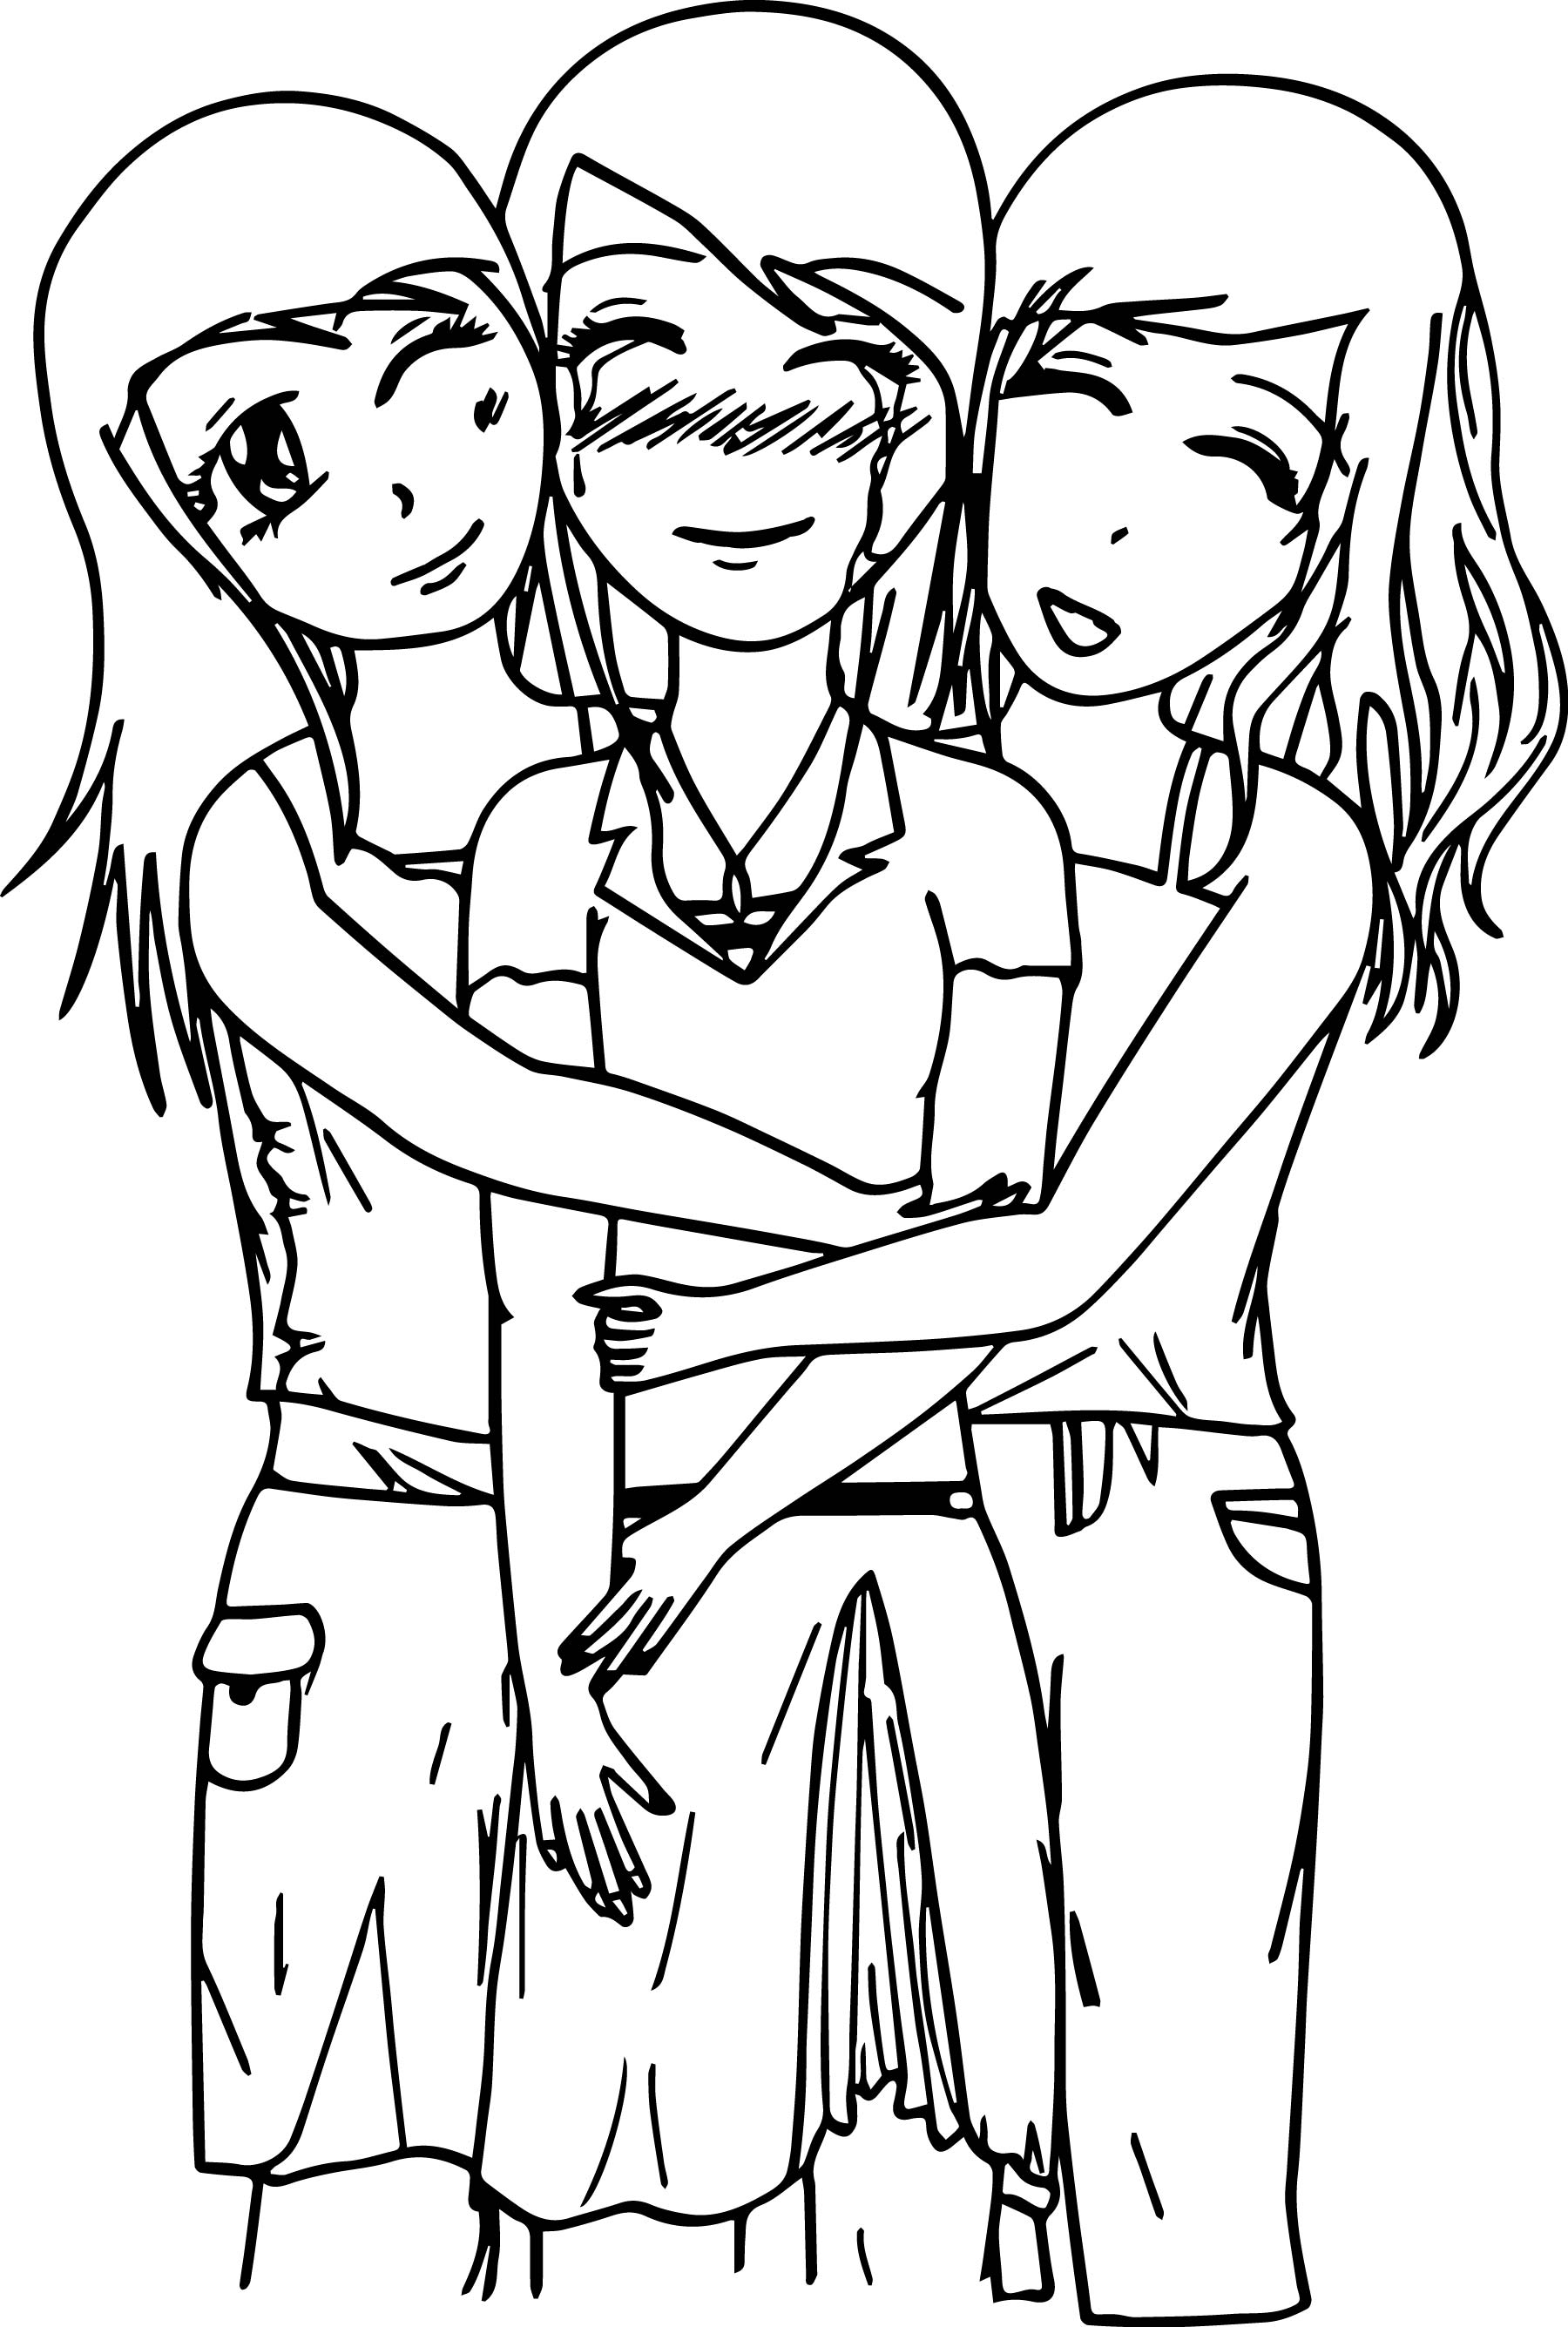 three girls coloring page bratz coloring pages three girl dolls colouring sheet coloring three girls page